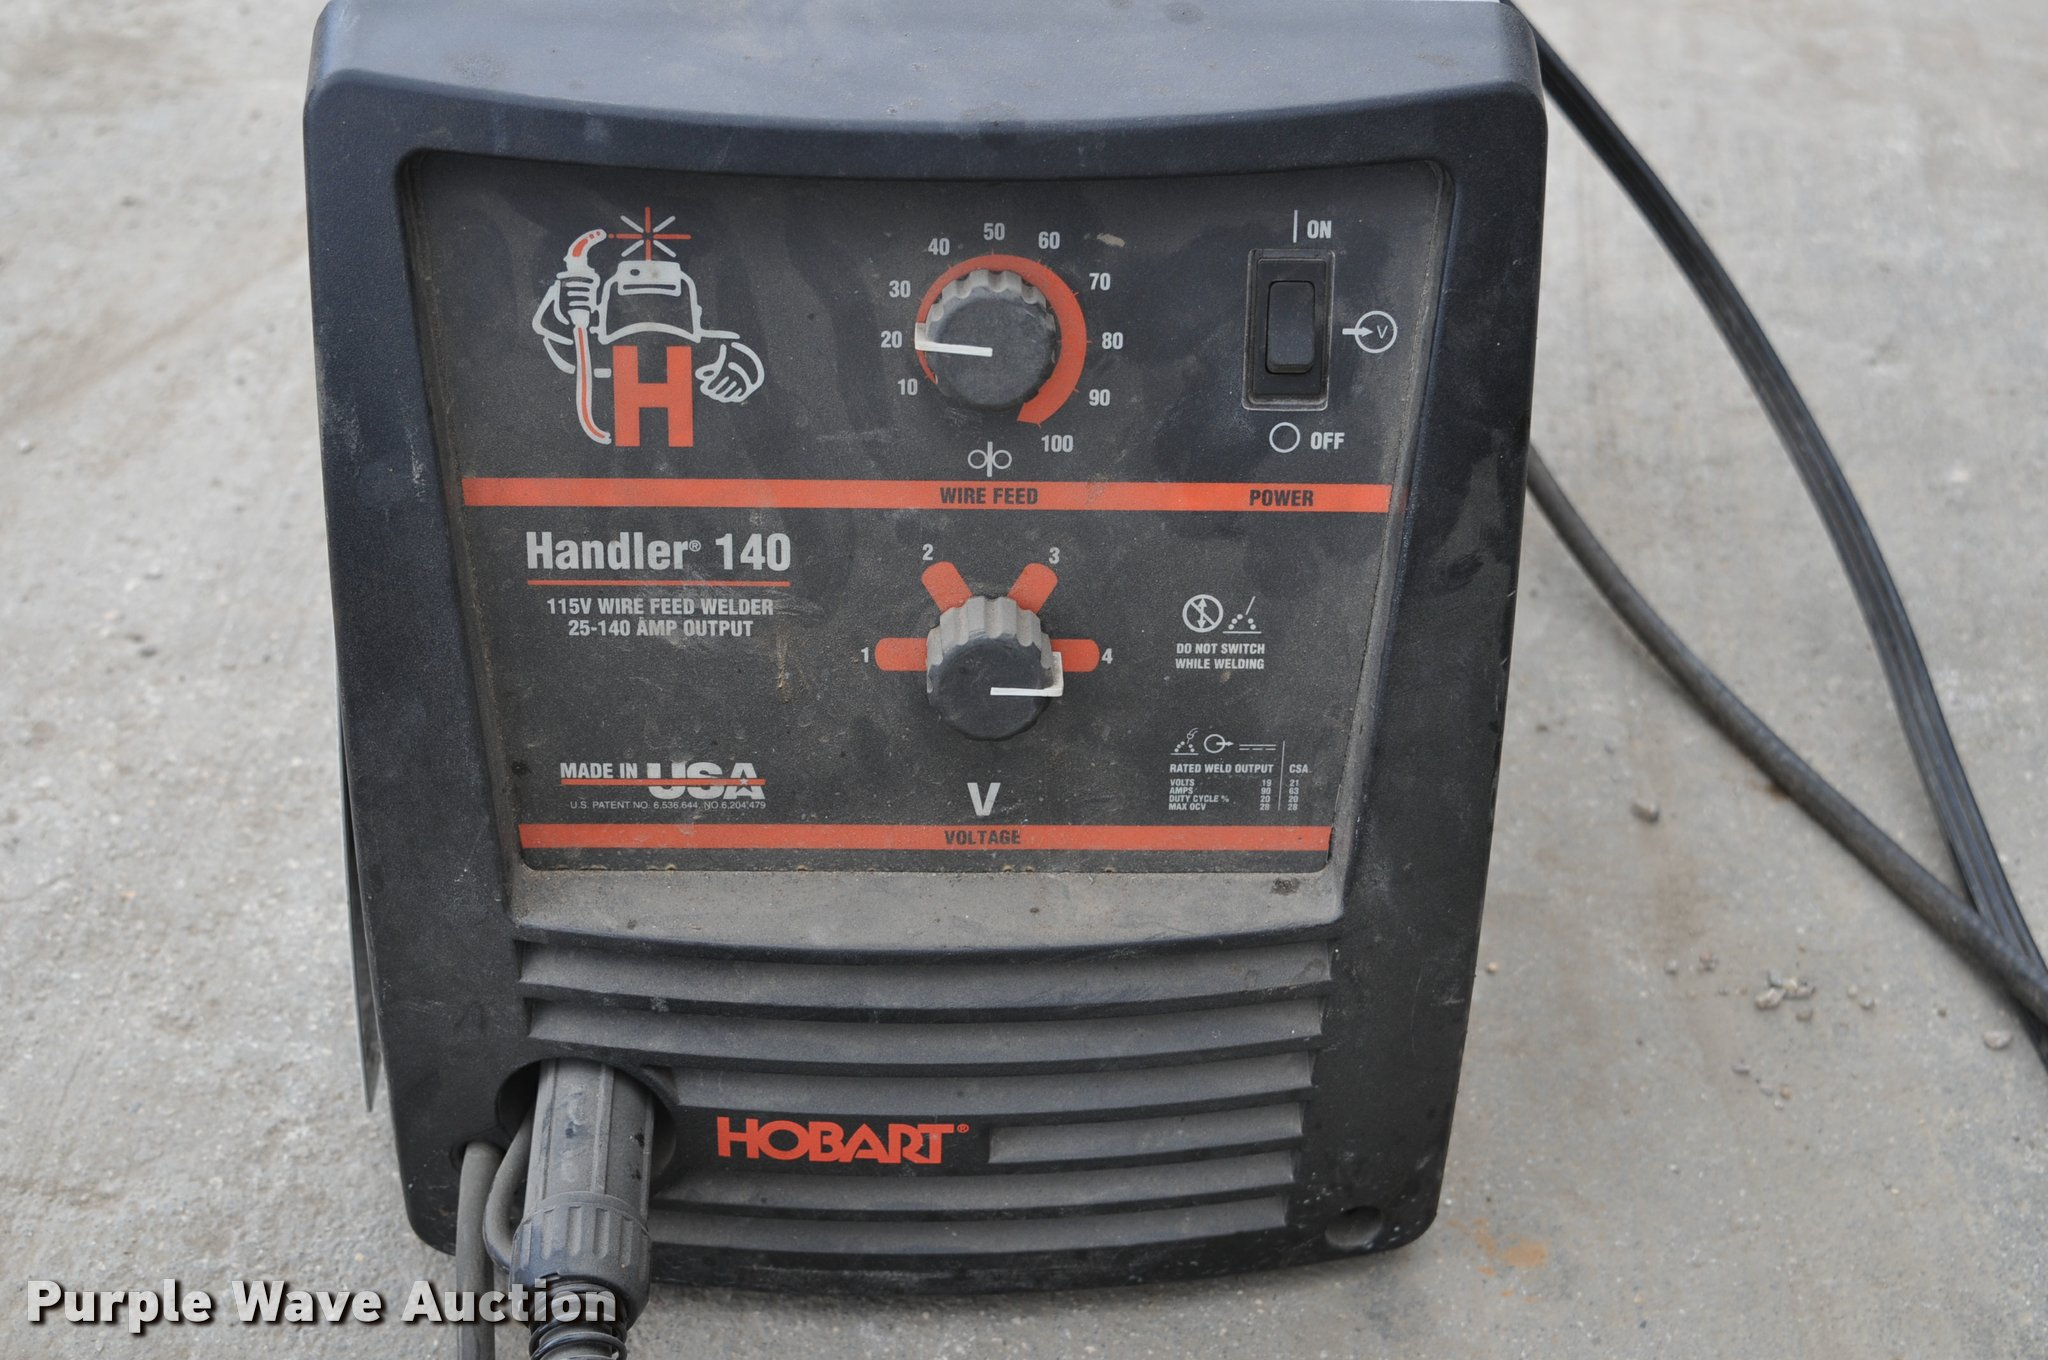 Hobart Handler 140 wire feed welder | Item K3775 | SOLD! May...